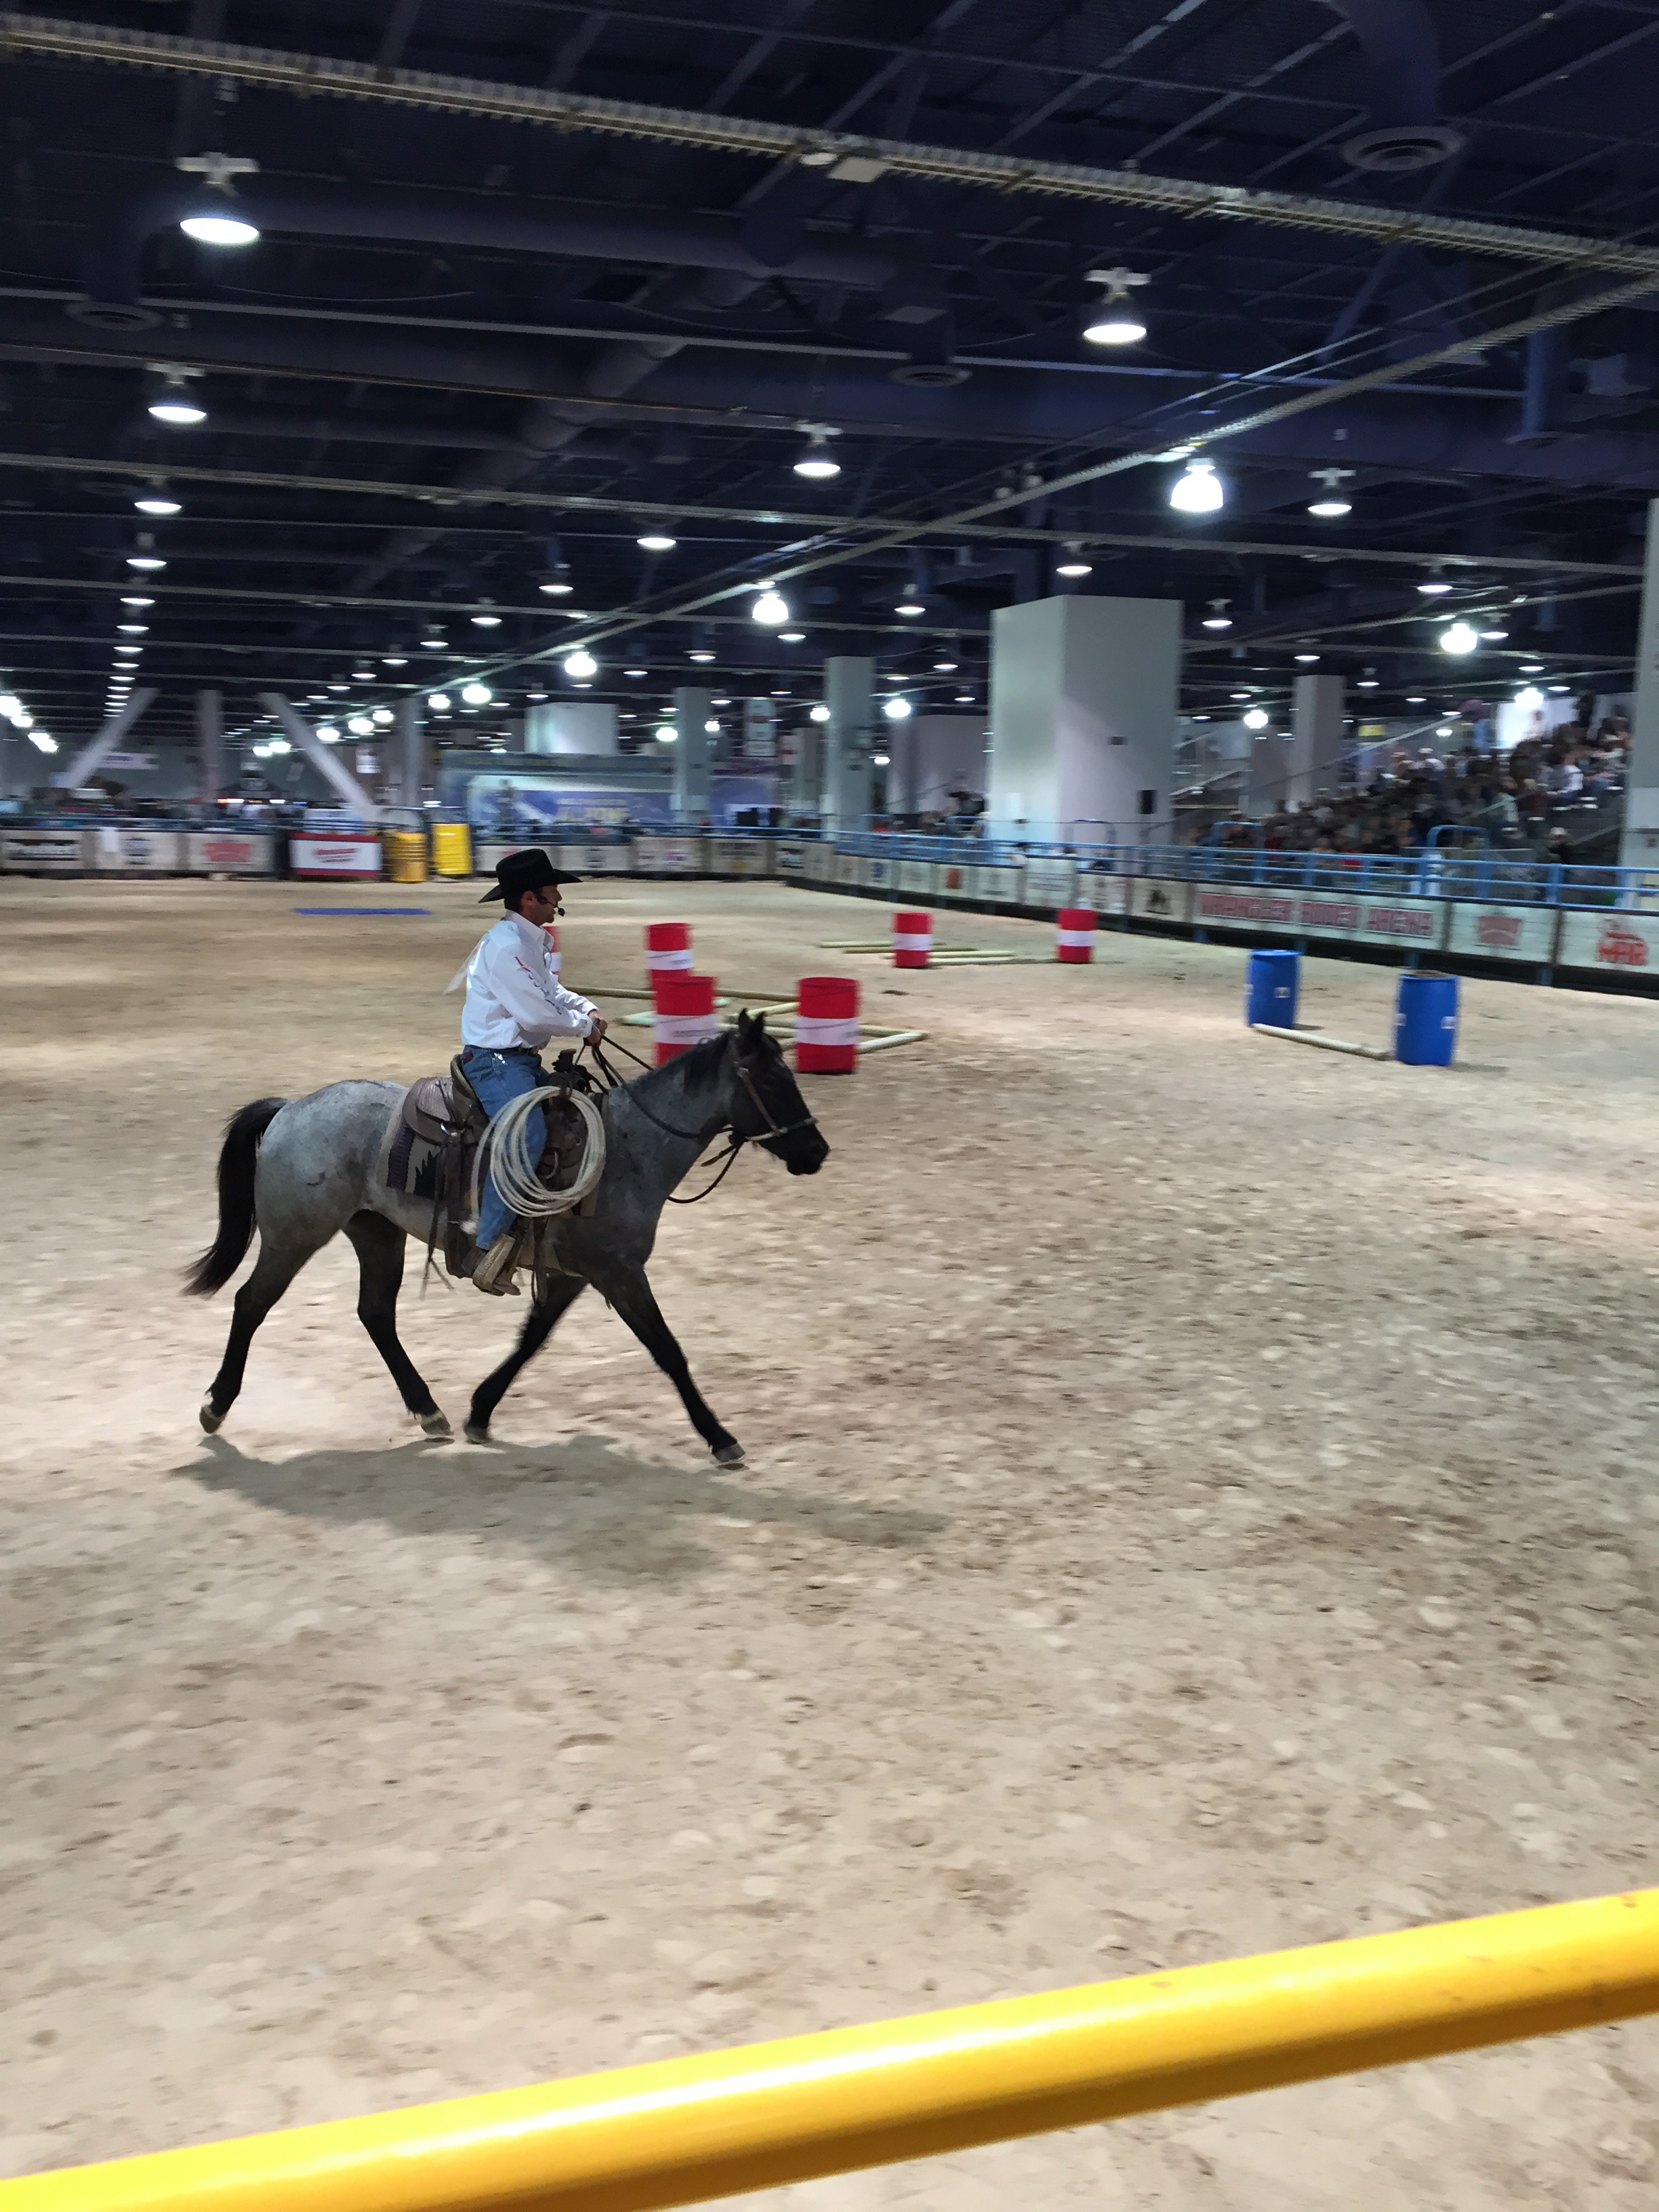 Steve riding Jenny during the final round. (Photo courtesy of Steve Stevens)